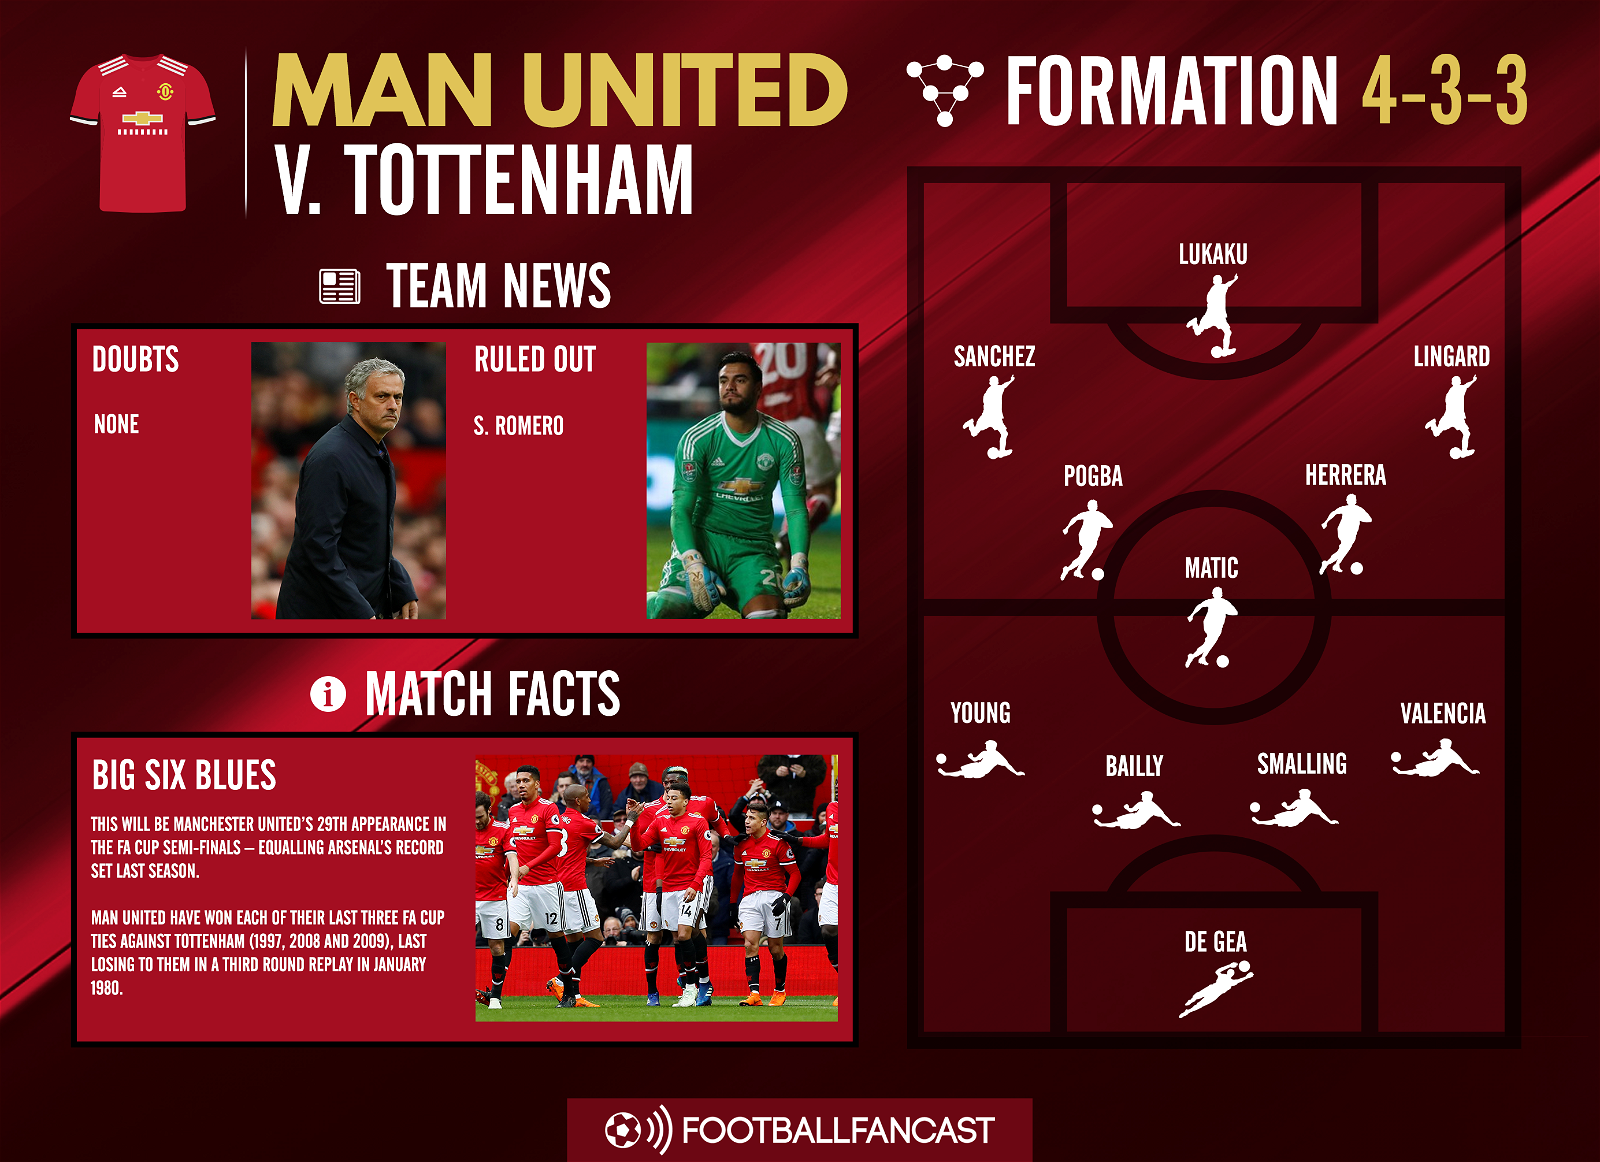 Man United team news for Tottenham clash